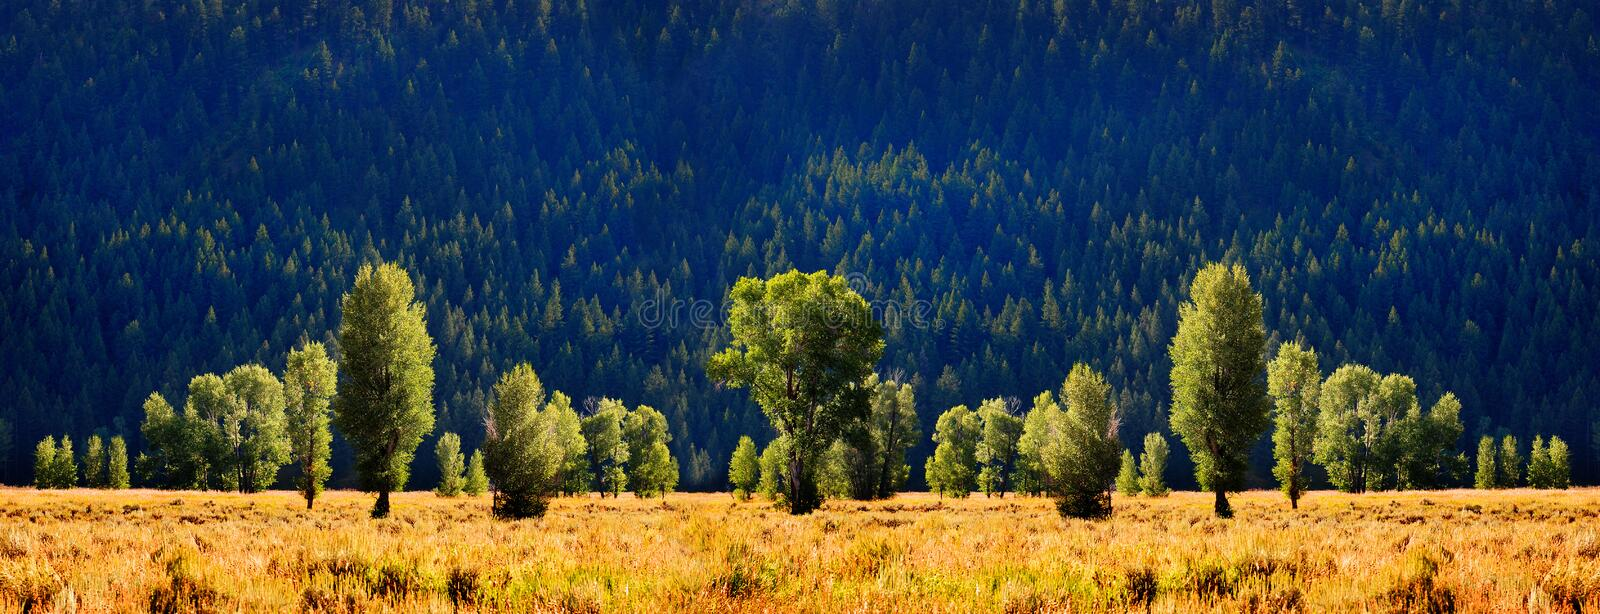 Trees and Mountainside royalty free stock photo